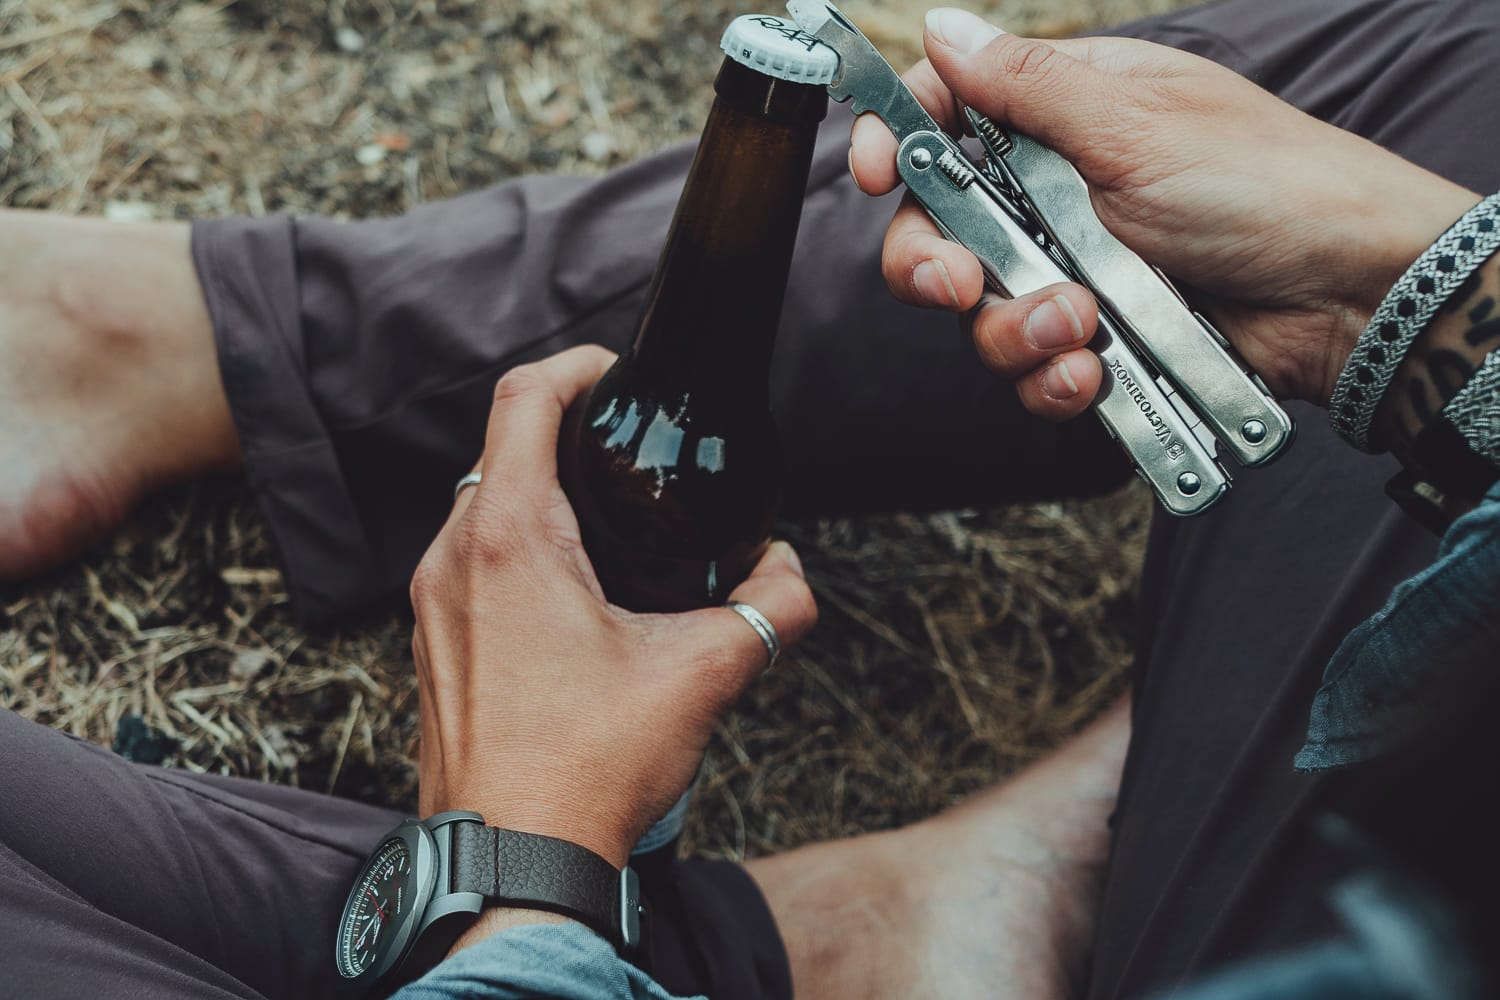 Opening a bottle using a multi-tool from Victorinox